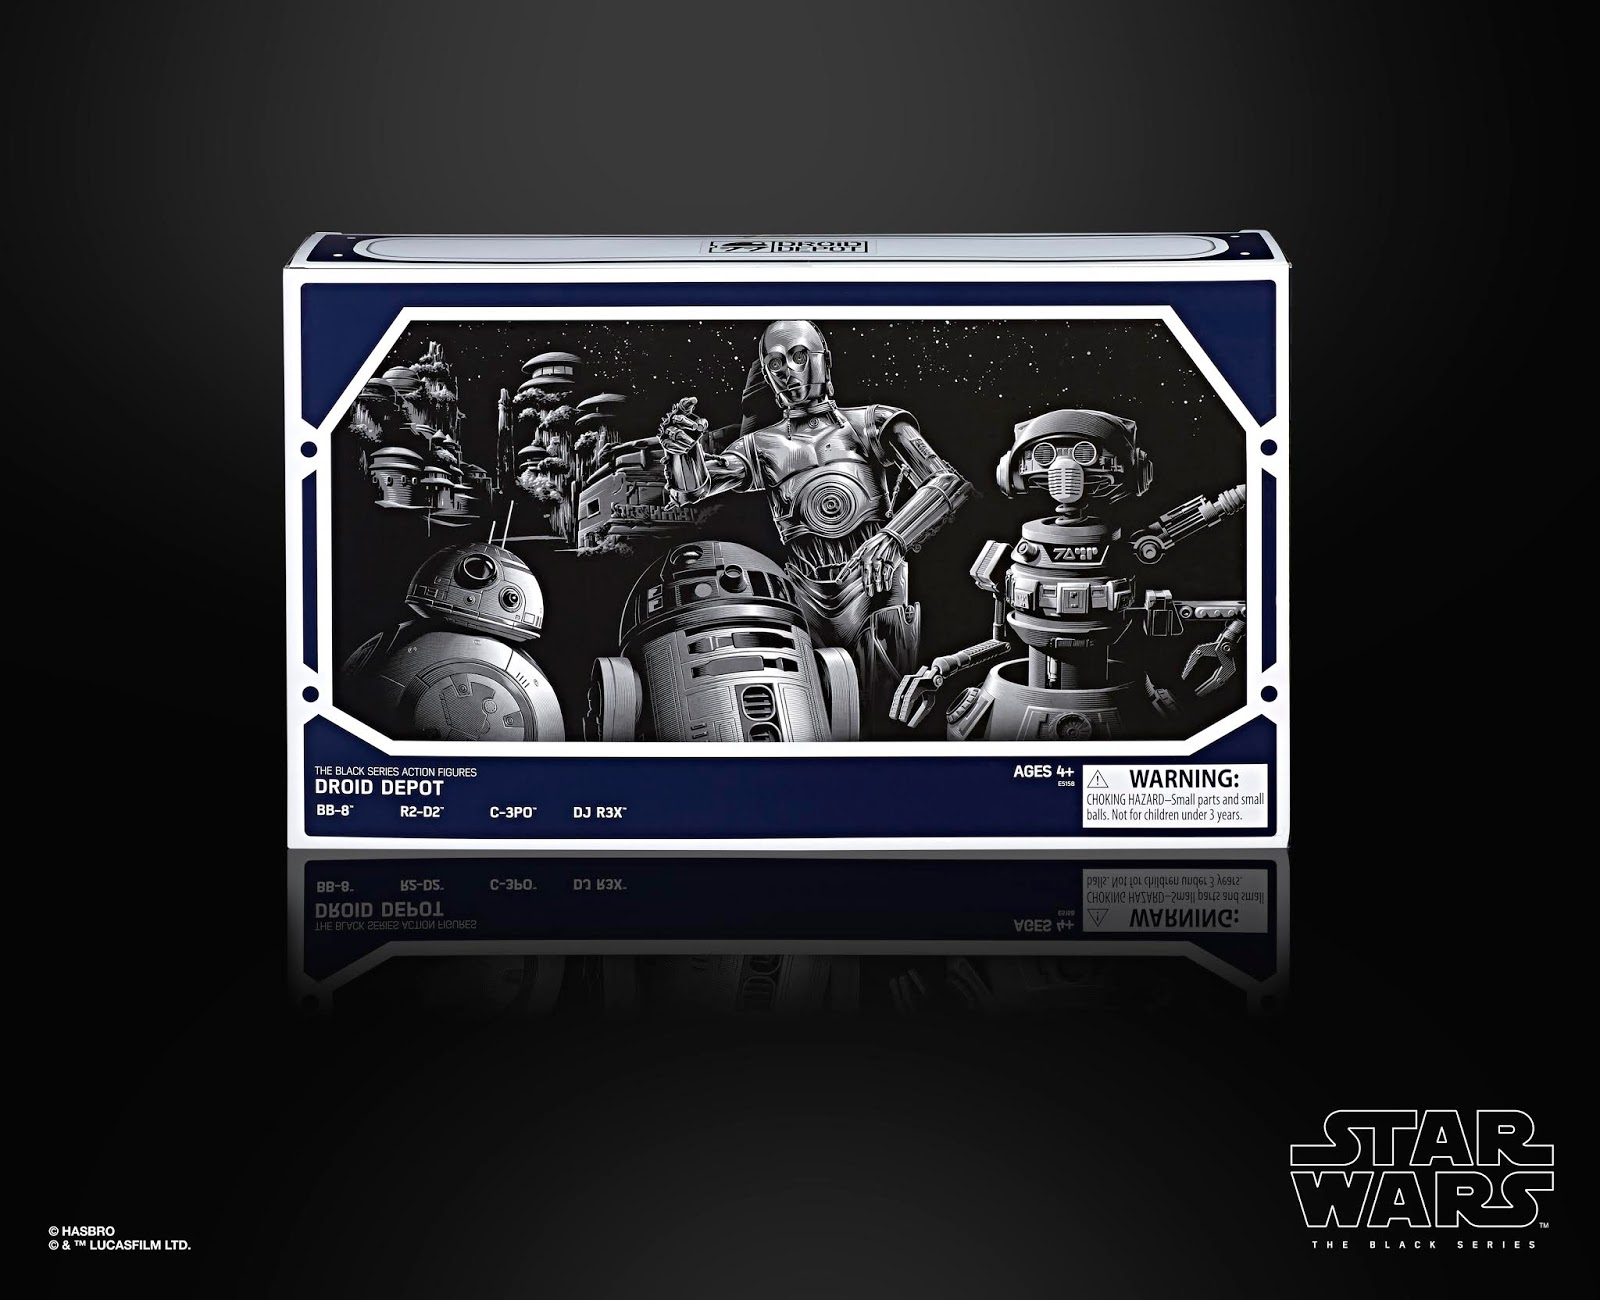 STAR WARS THE BLACK SERIES 6-INCH DROID DEPOT 4-PACK